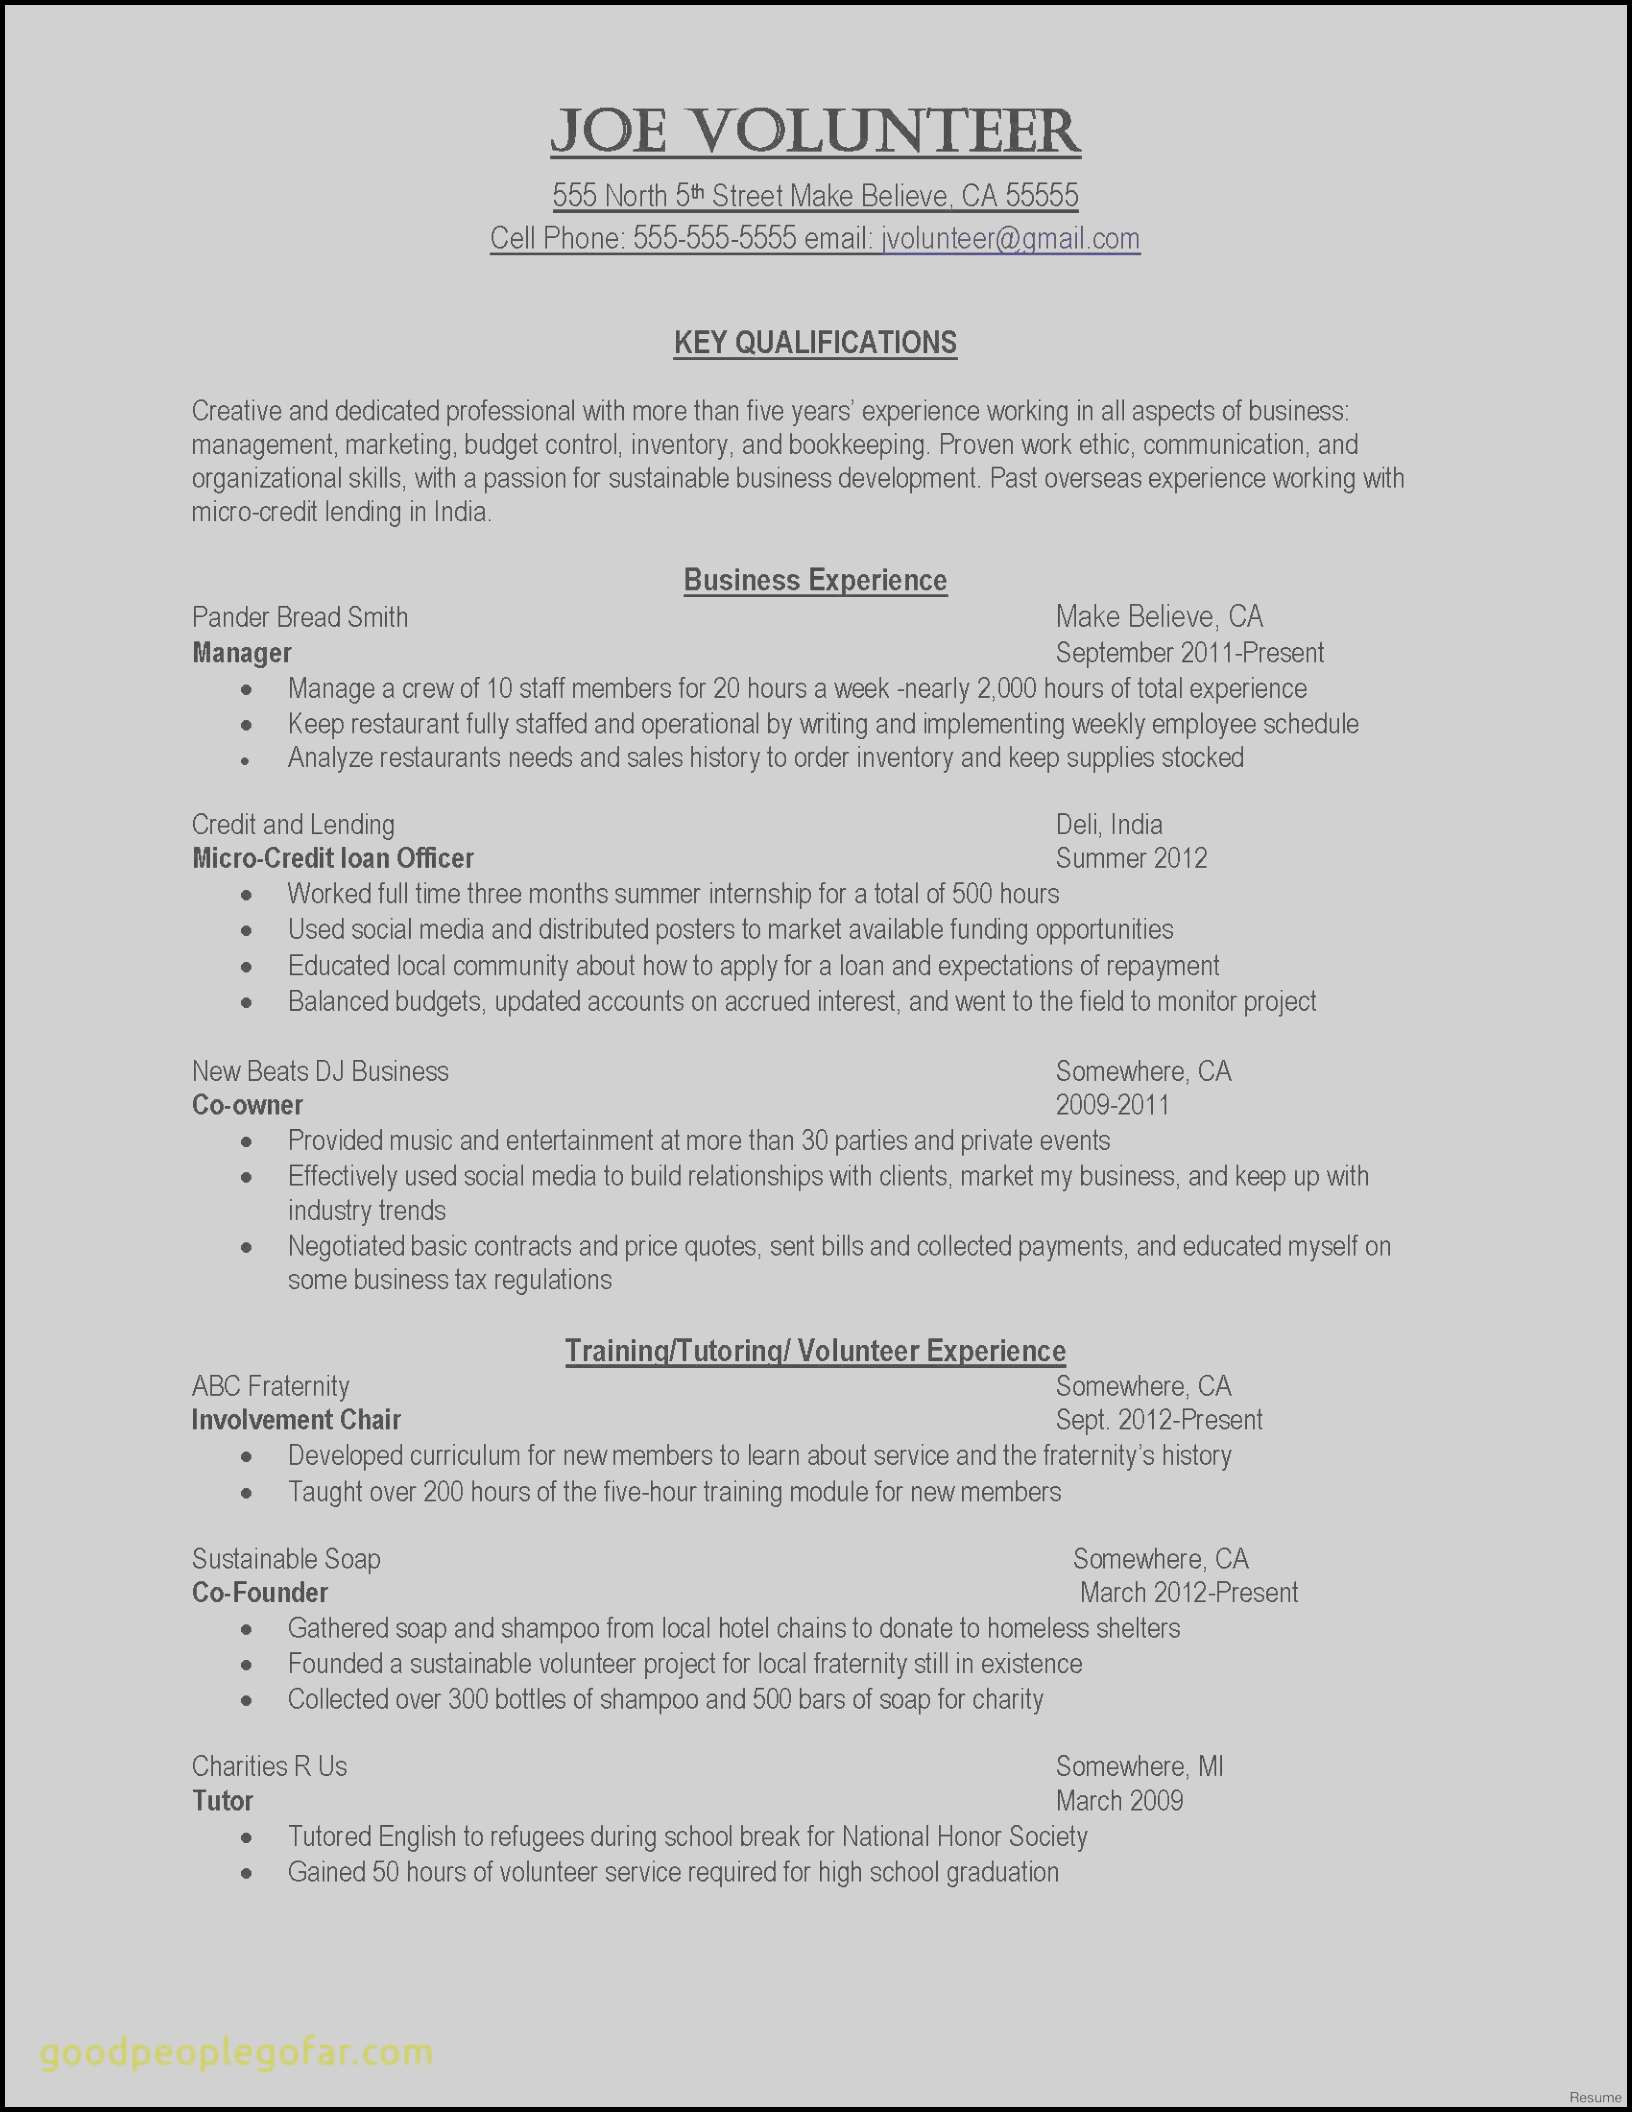 Good Self Descriptive Words for Resume - Breathtaking Self Descriptive Words for Resume